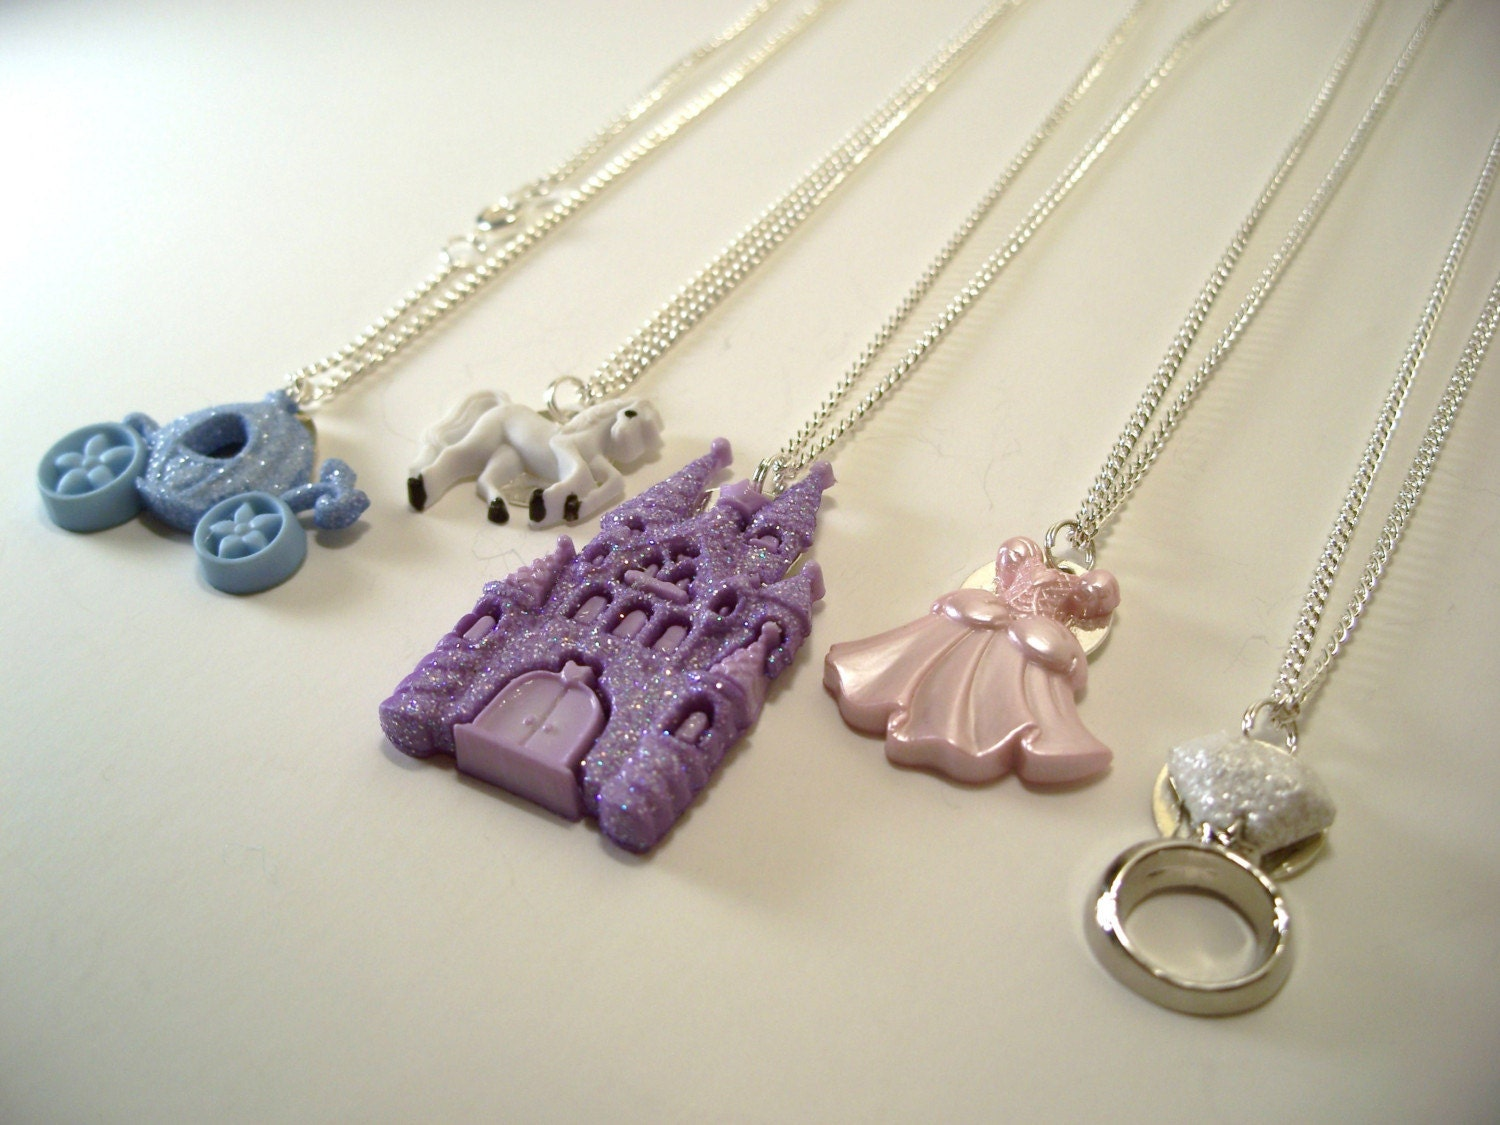 Princess and Cinderella Theme Necklace